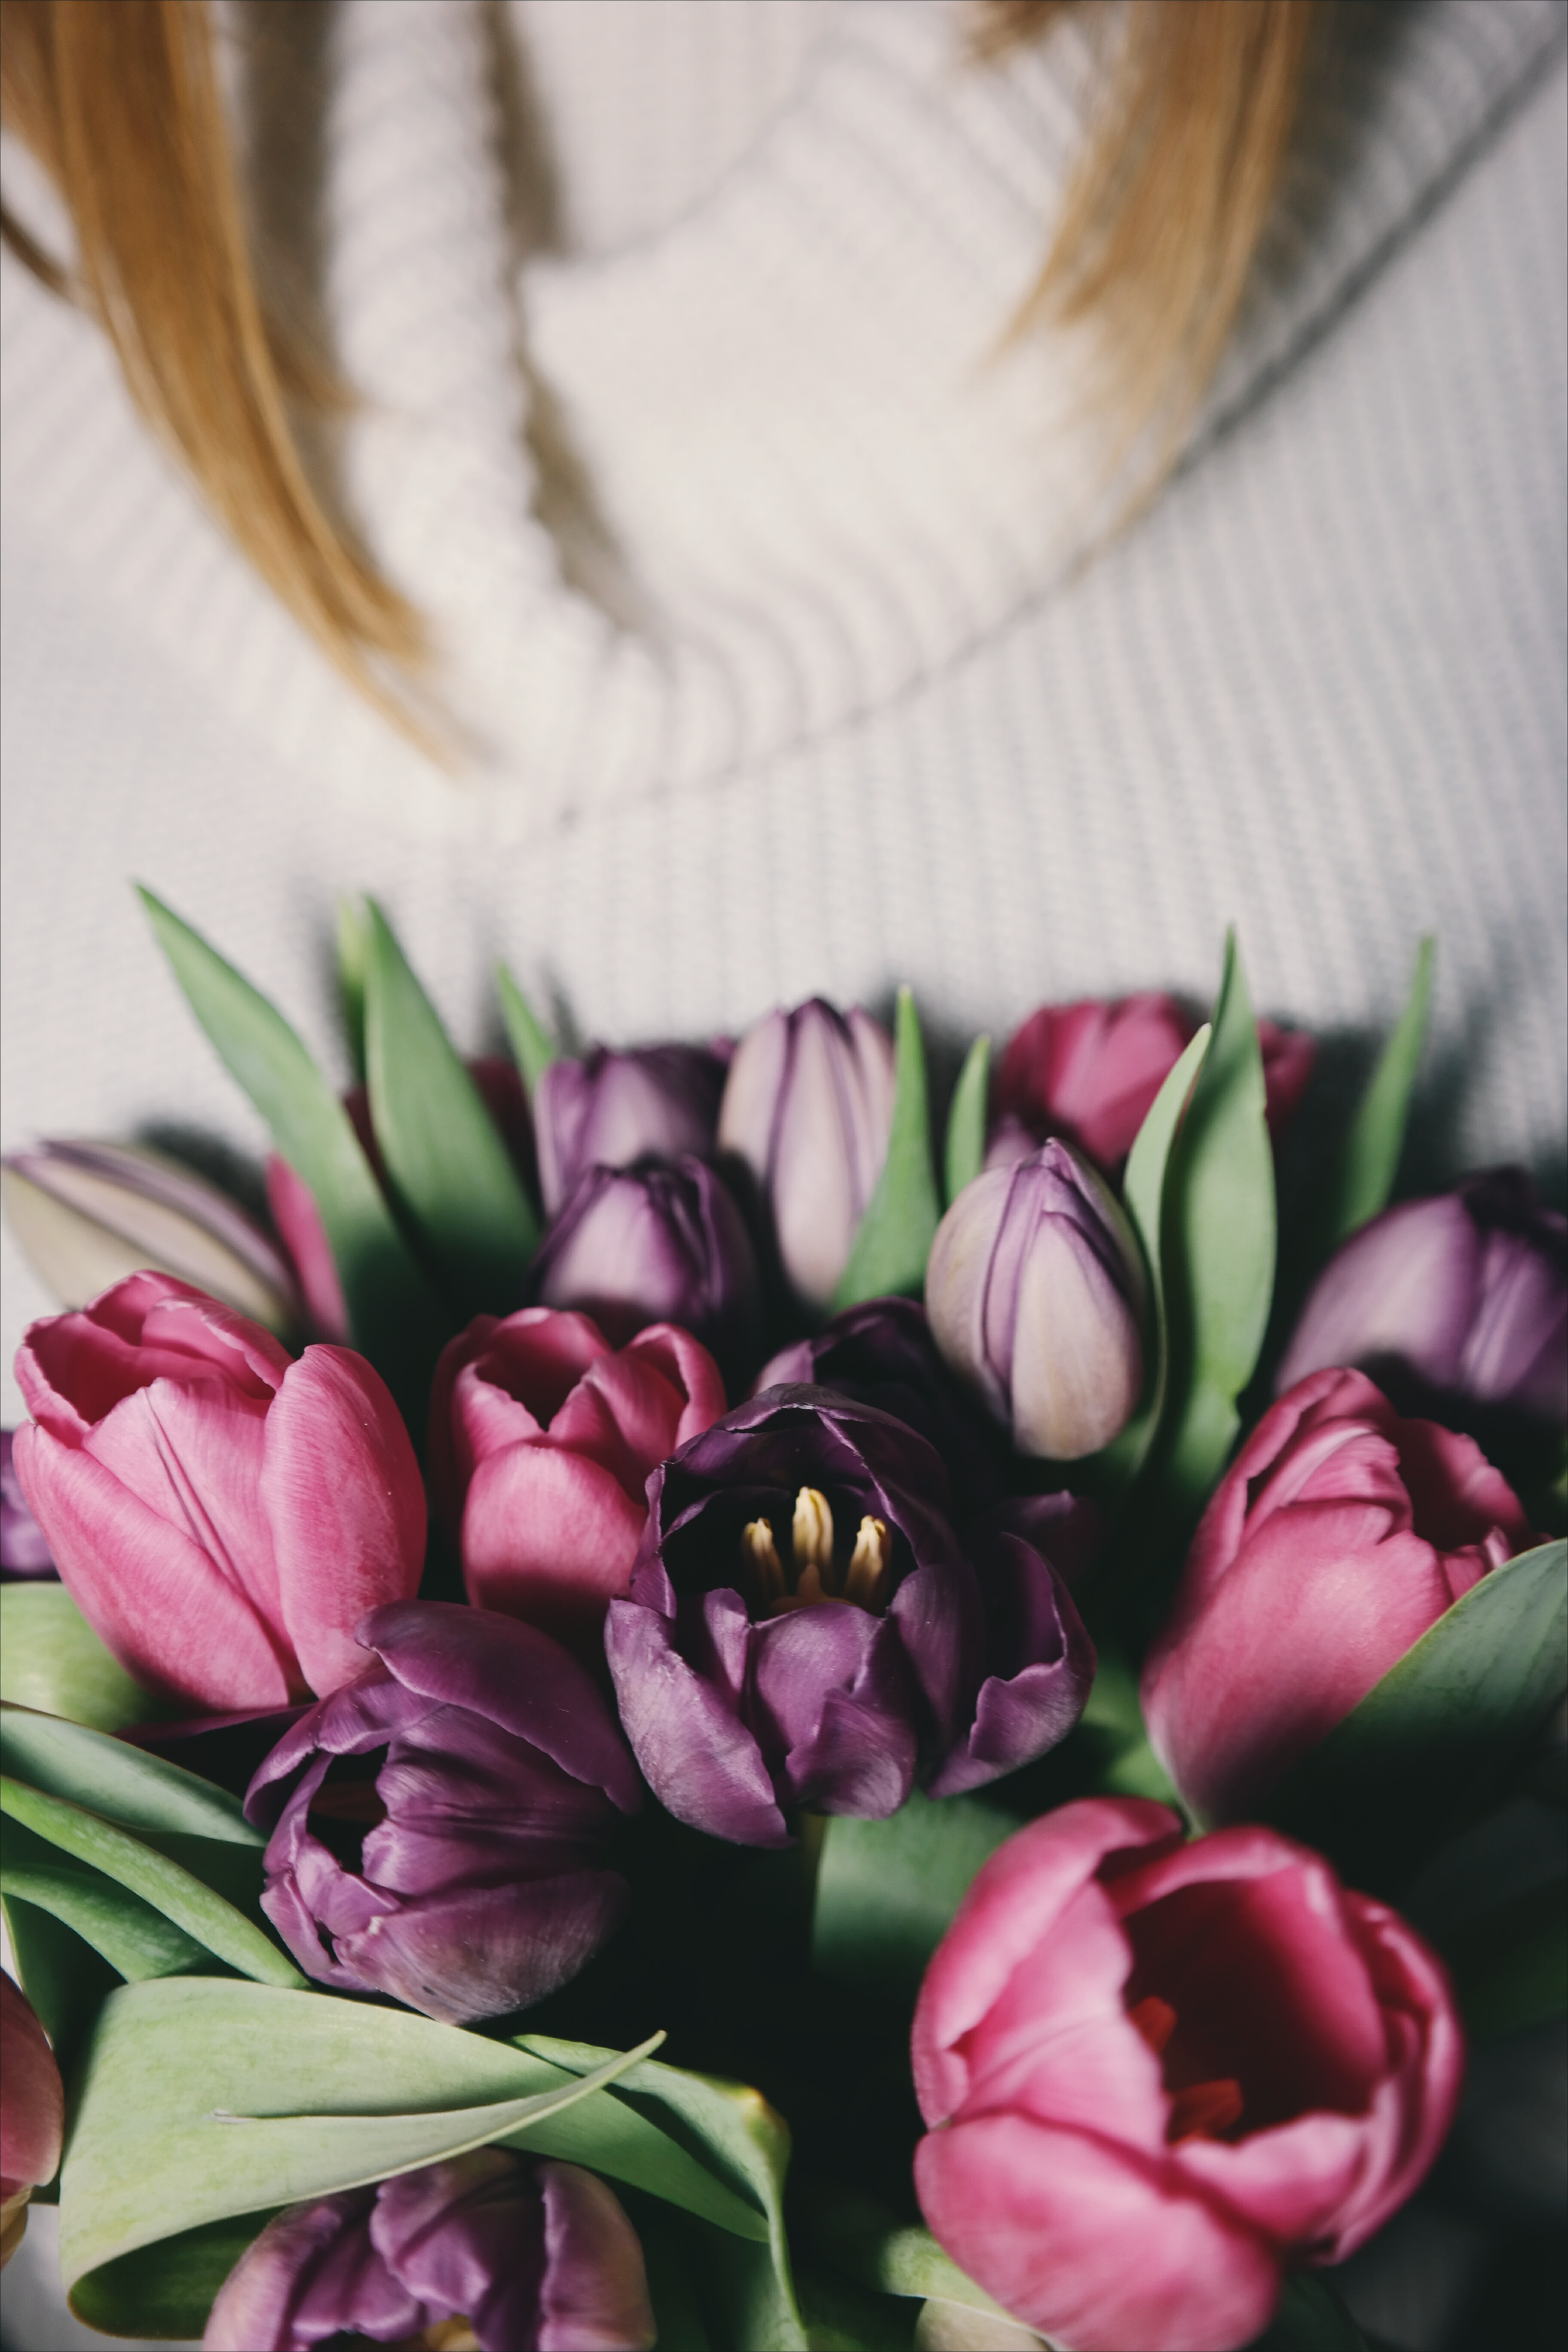 Pink purple flower bouquet with blonde woman in white cowl neck jumper in background in Spring